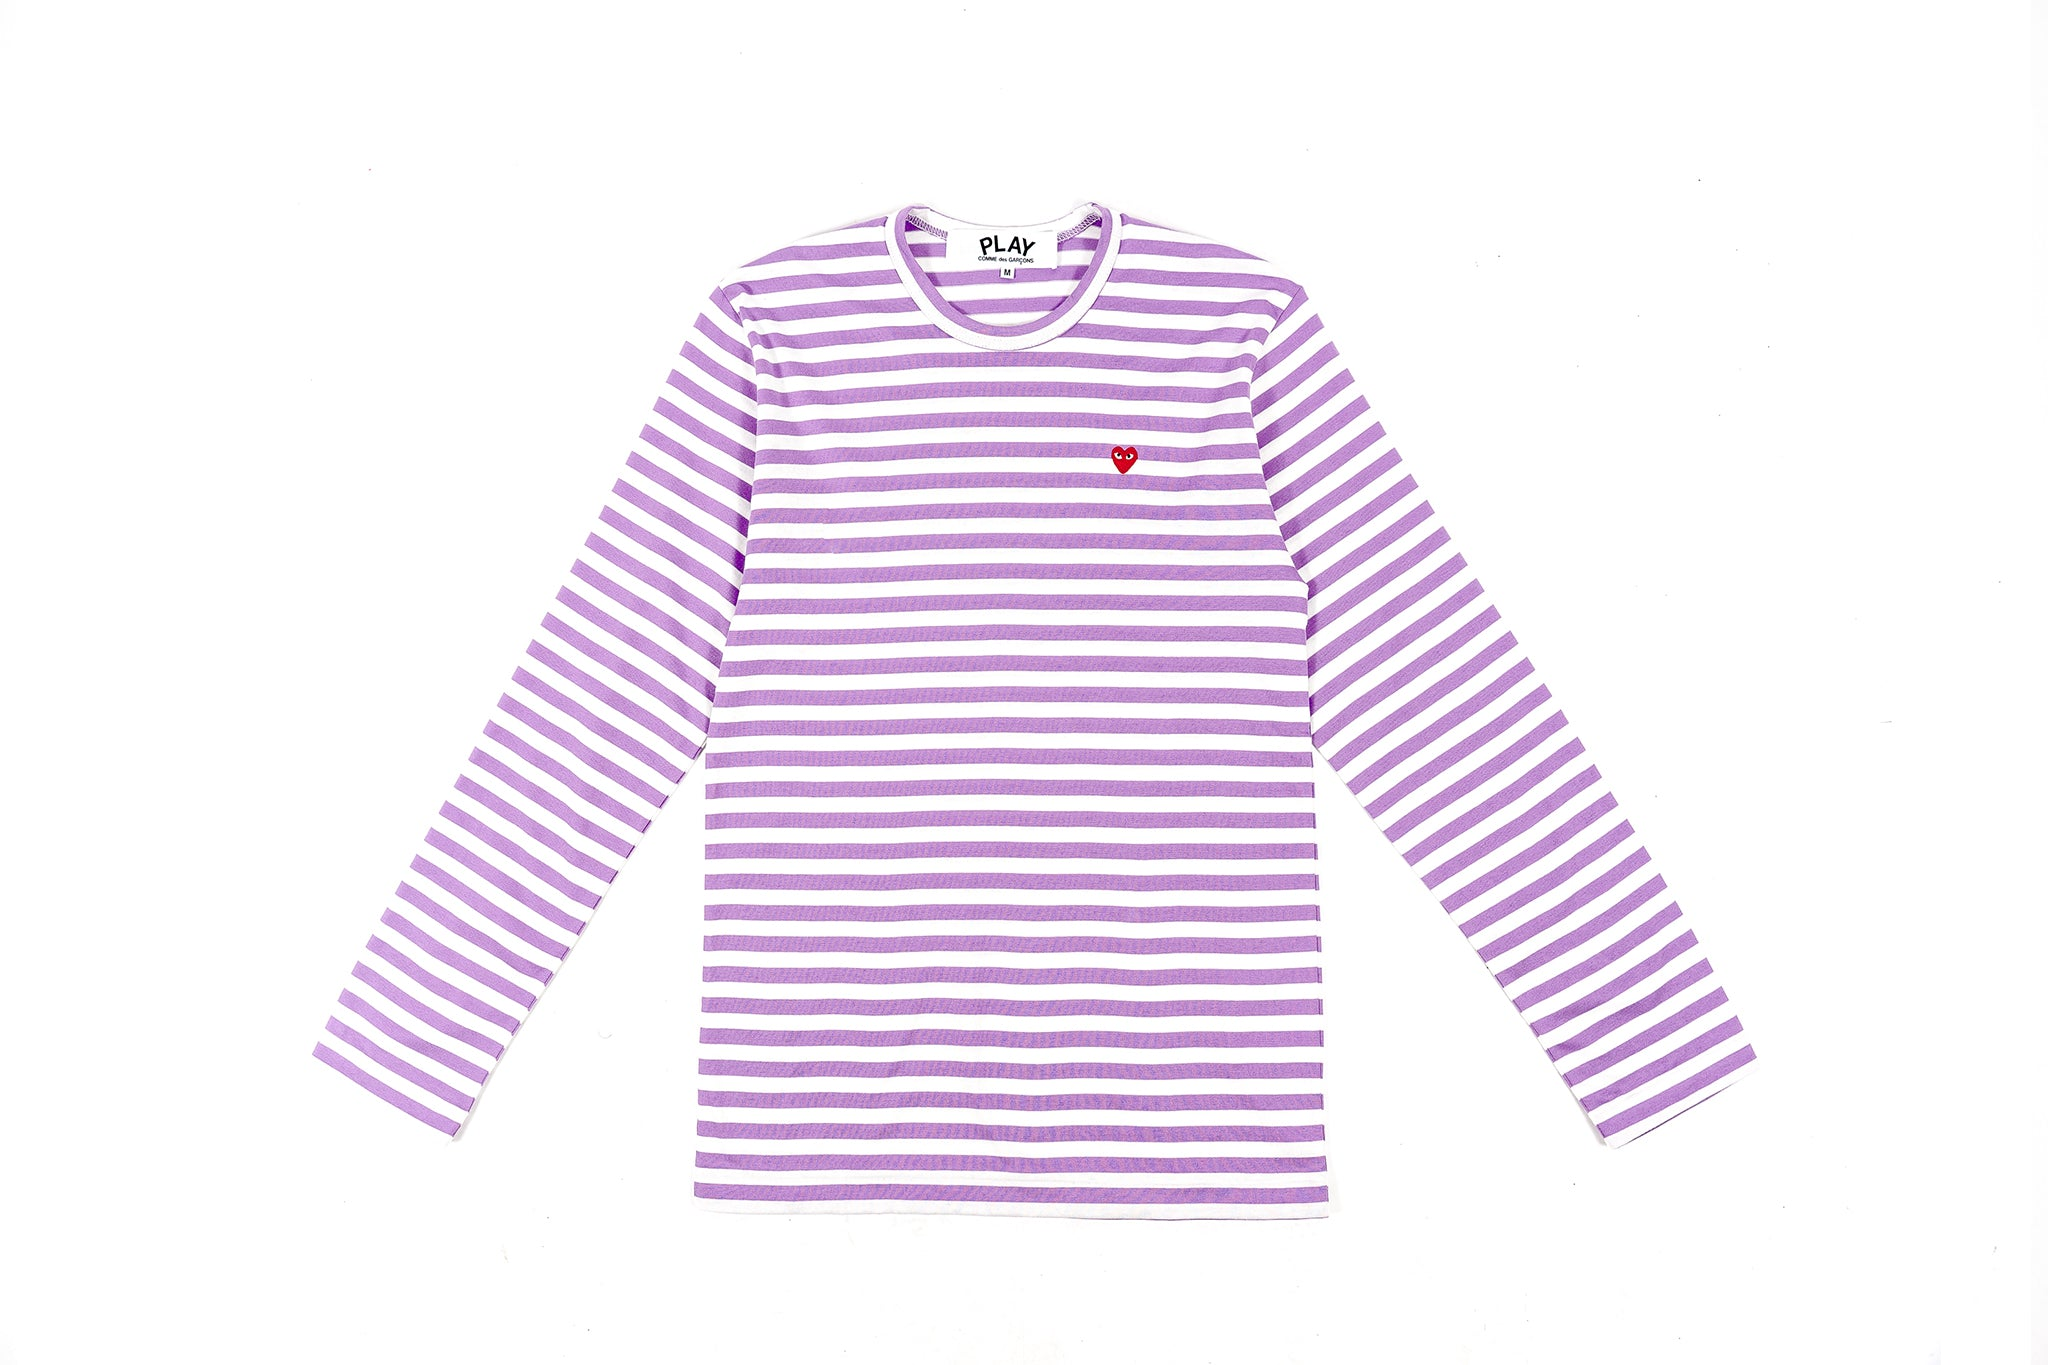 CDG PLAY COLOR SERIES LITTLE RED HEART STRIPED L/S T-SHIRT